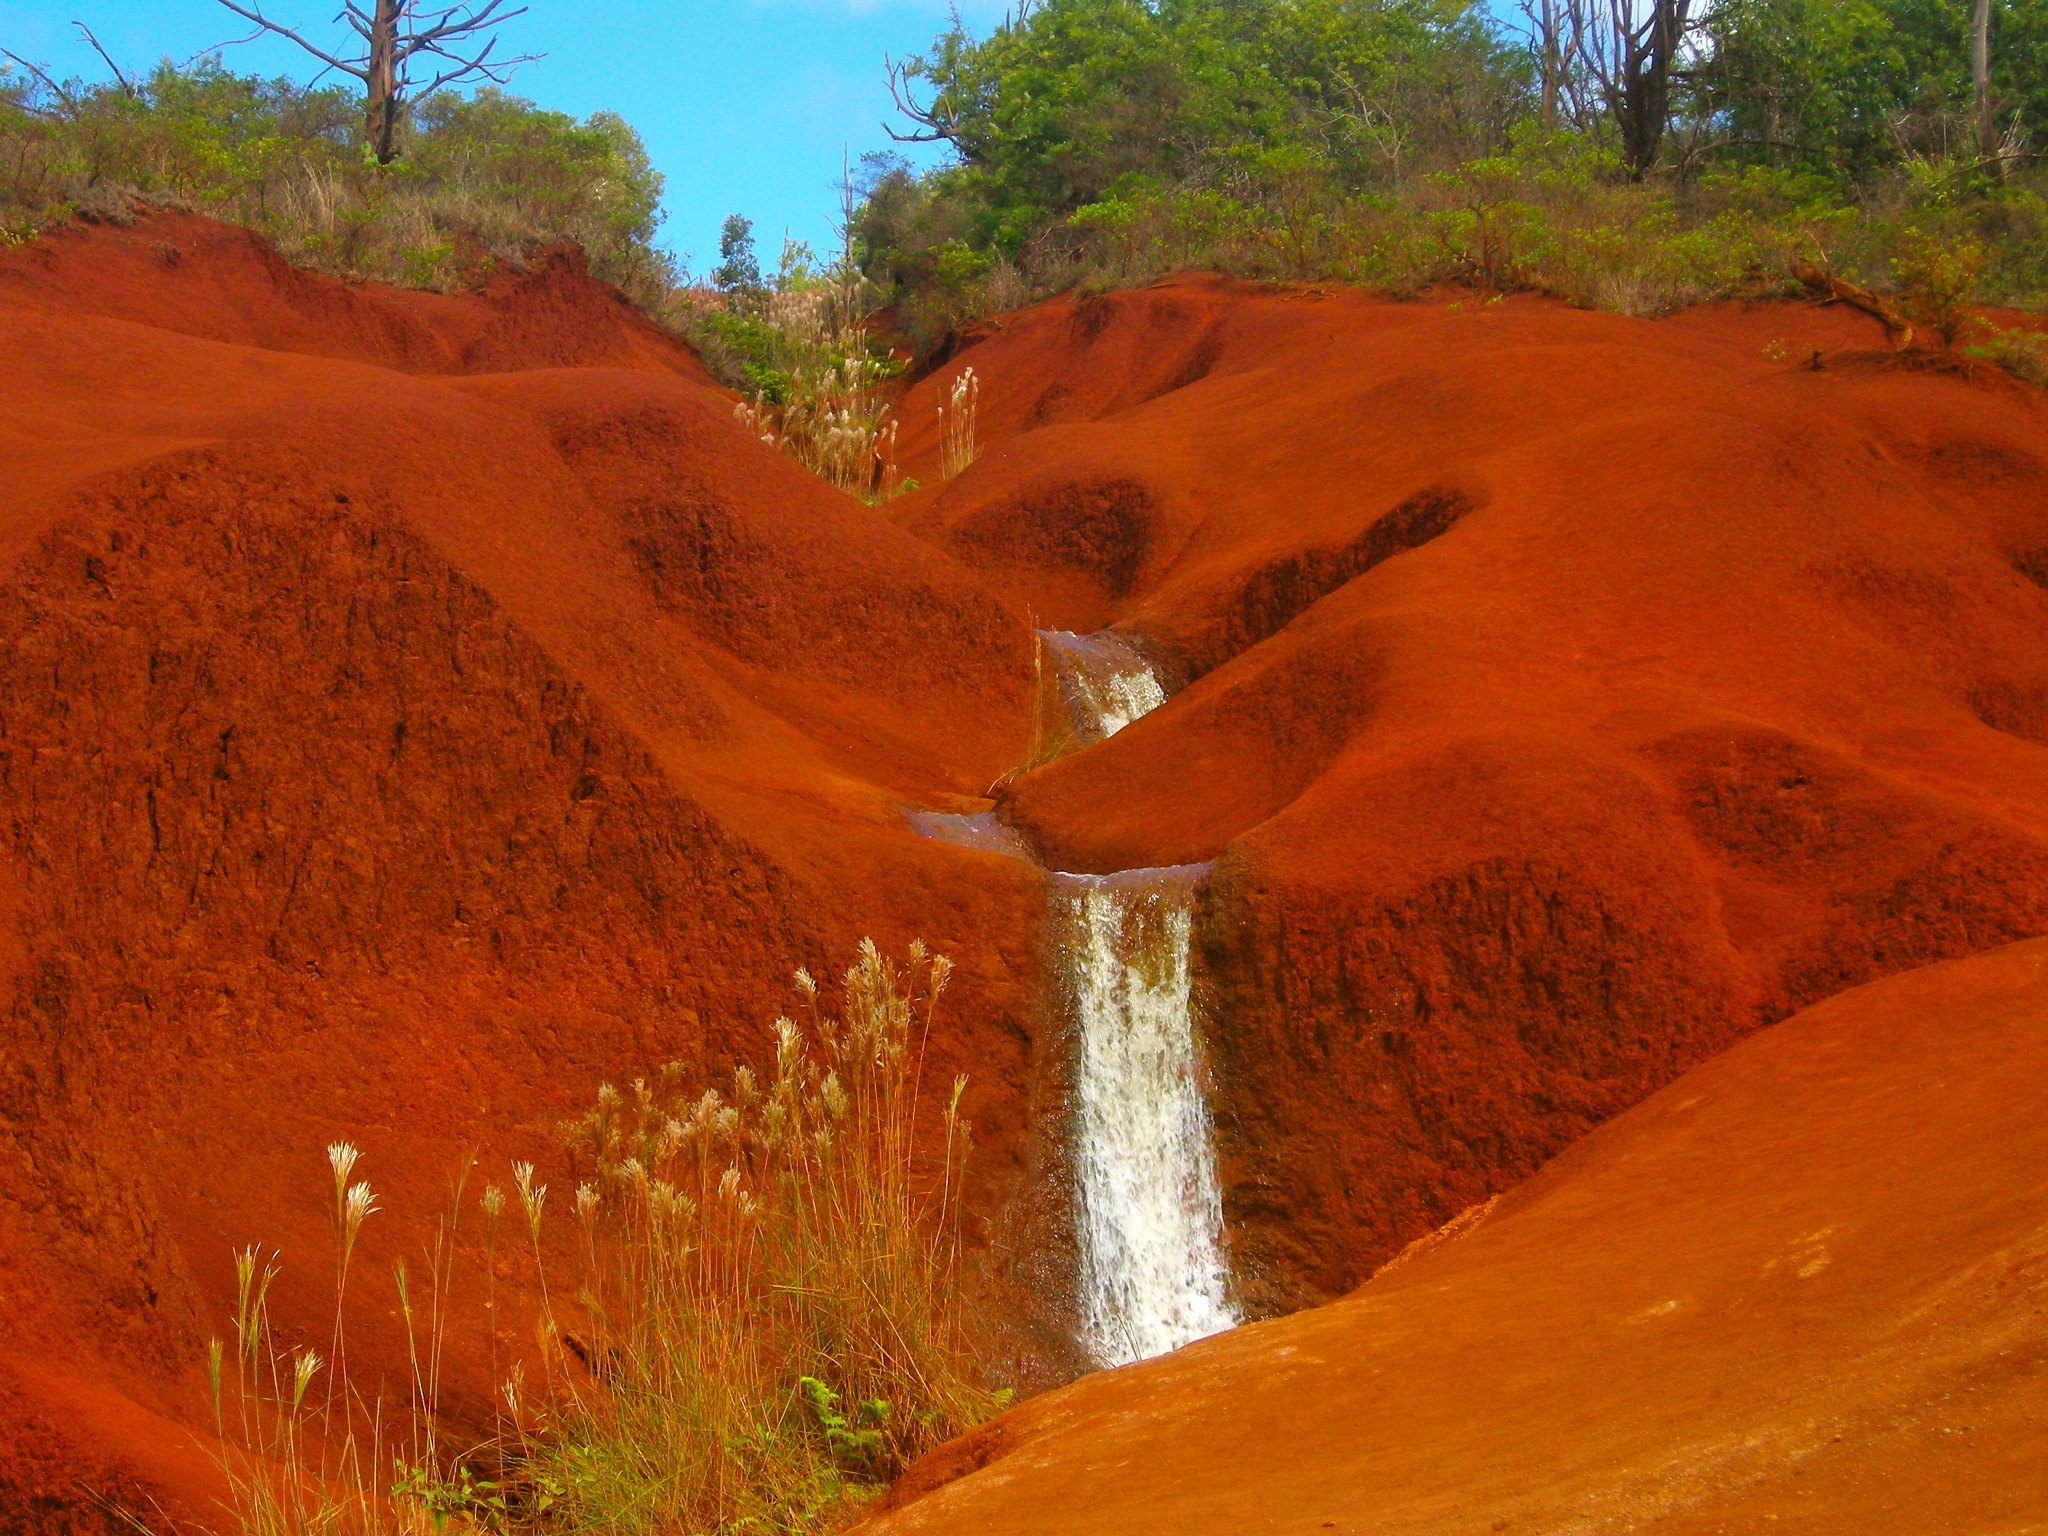 Red Dirt Waterfall - Place To Visit In And Around Waimea Canyon